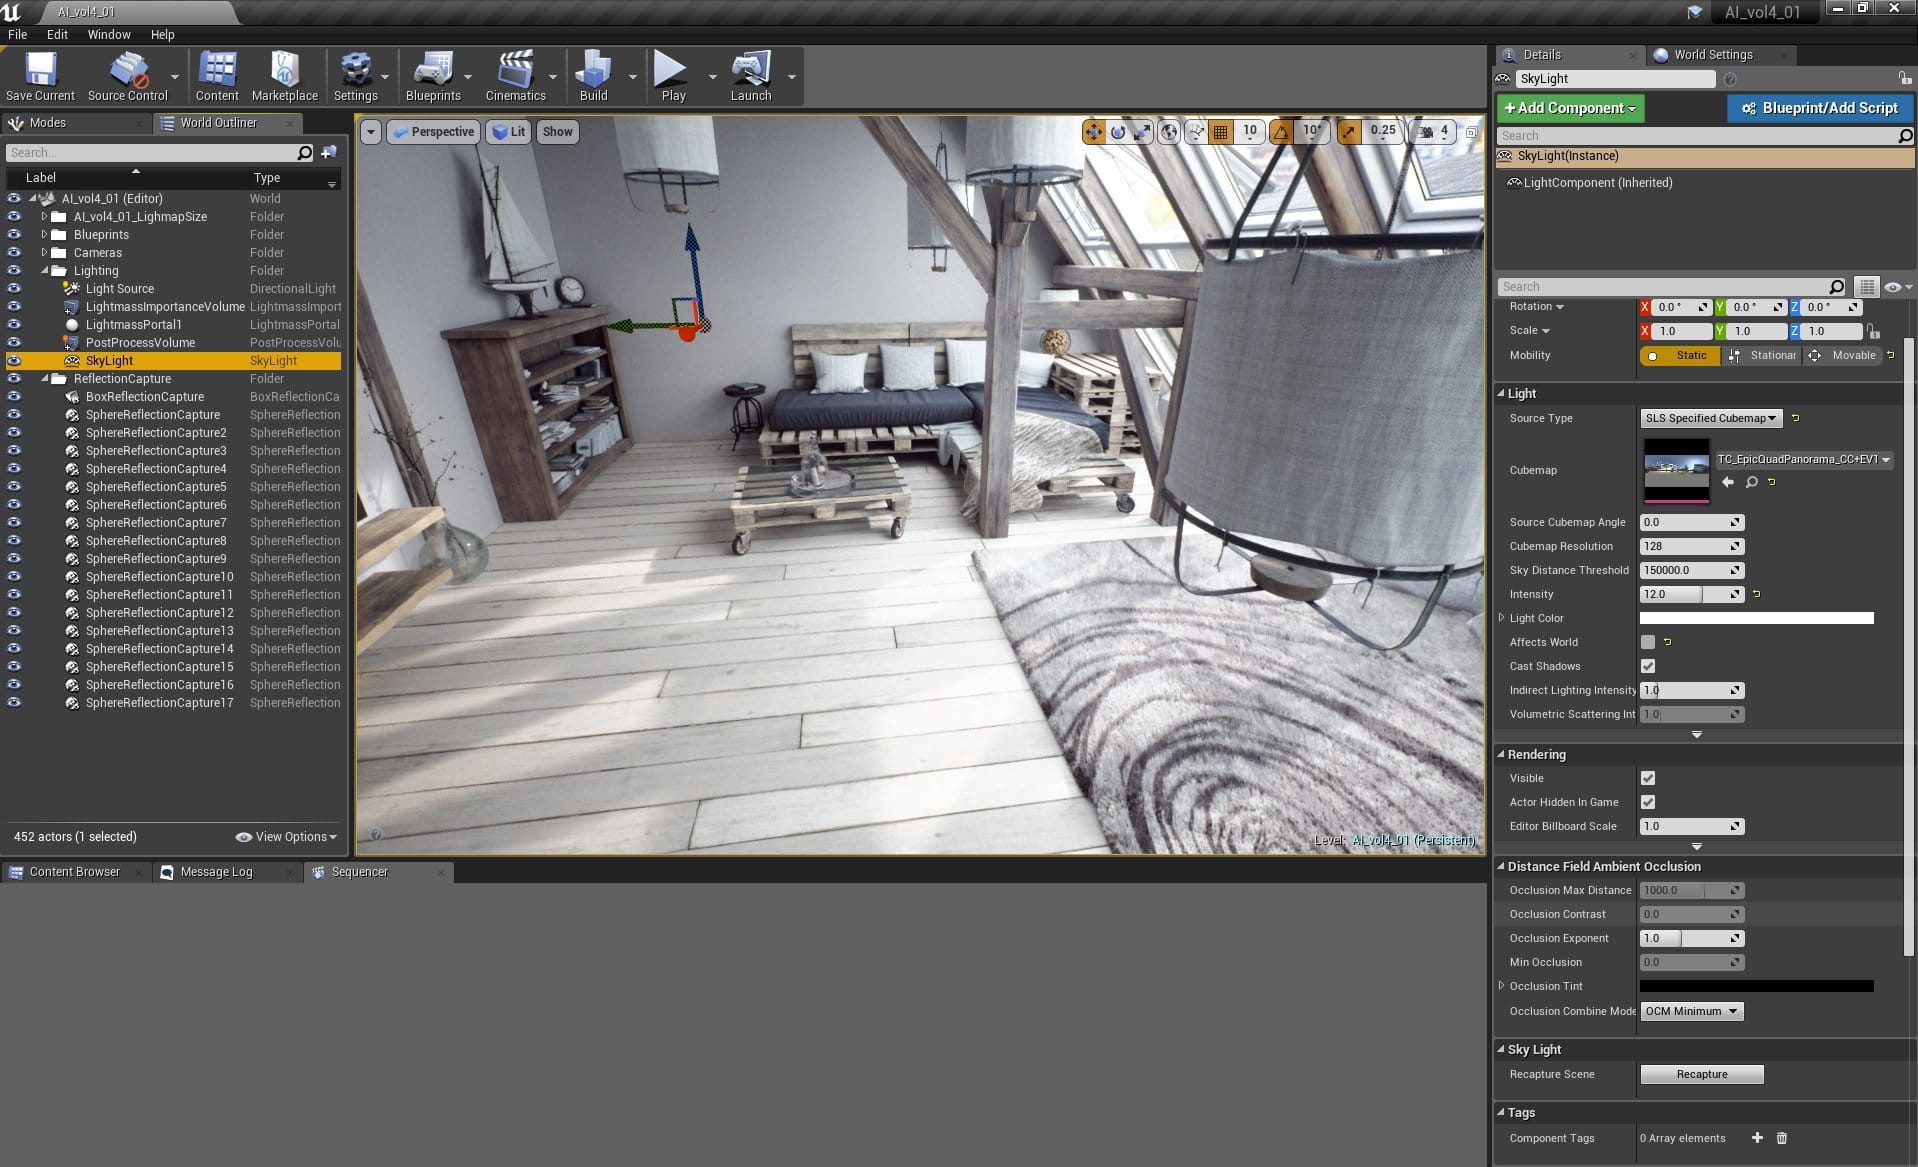 Unreal Engine: Making of Bright Interior - Tip of the Week